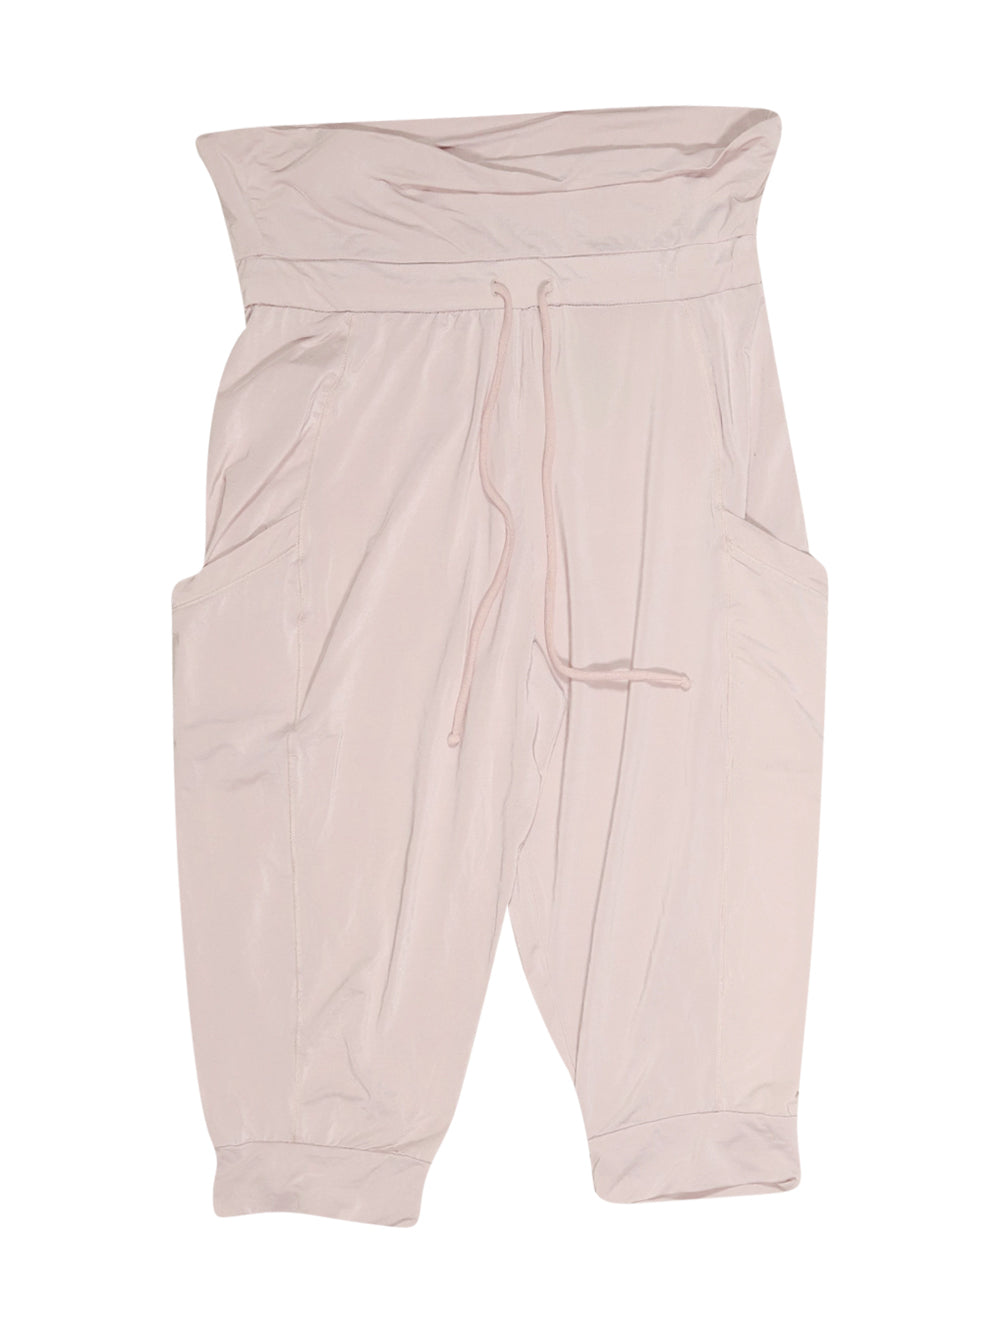 Front photo of Preloved Oysho White Woman's sport trousers - size 10/M